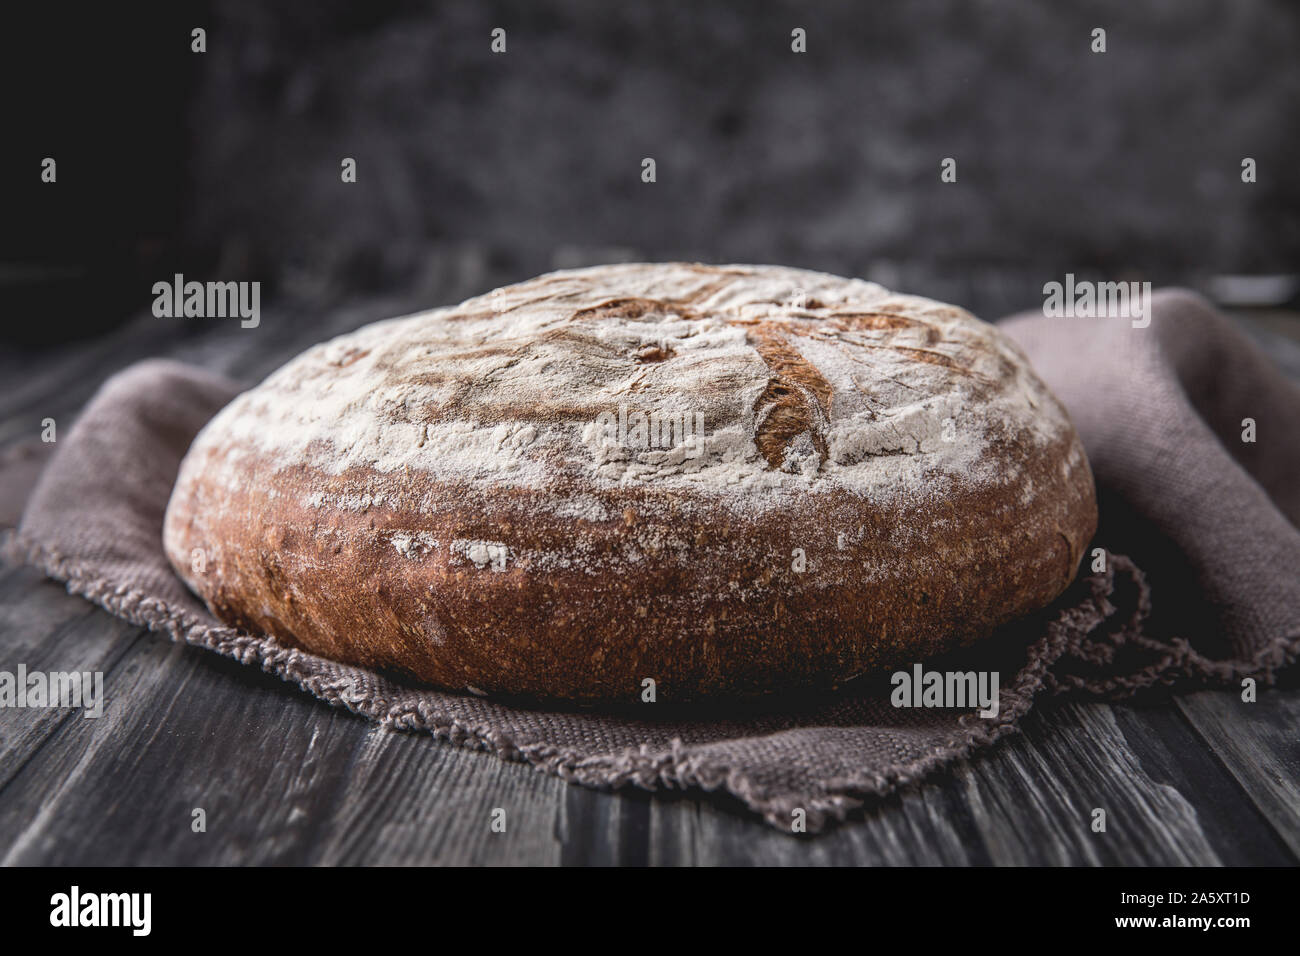 A homemade round levain bread with rye and wheat flour. that is laid on a dark wooden table, with a dark background. There is a brown soft linen cloth Stock Photo